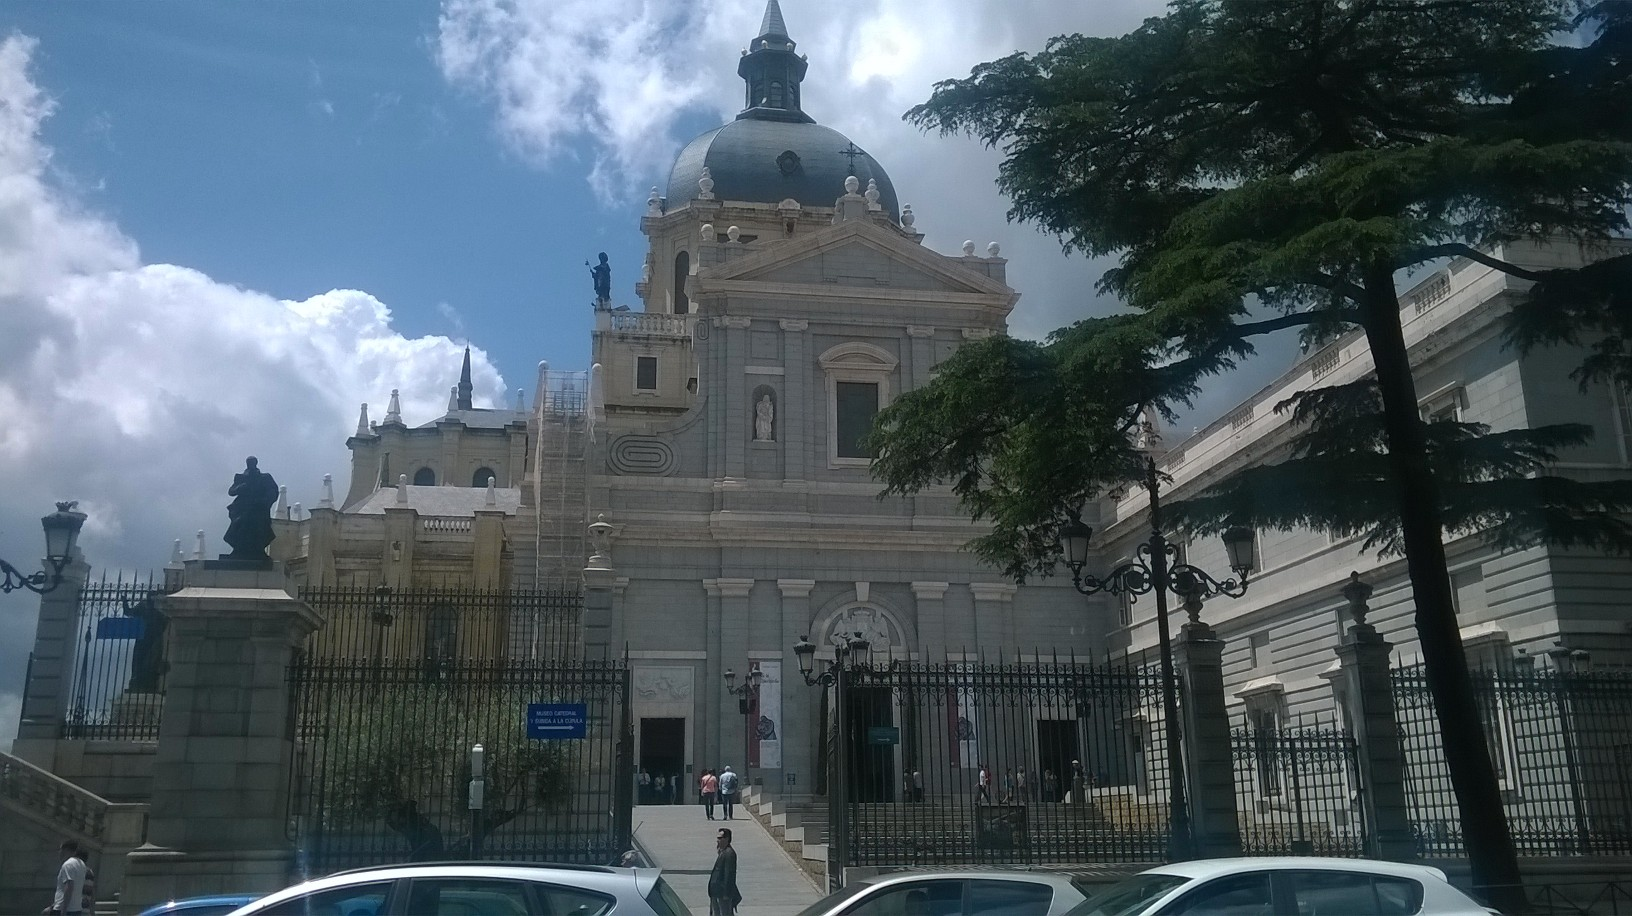 mad-catedral-almudena-museum-entr-may16